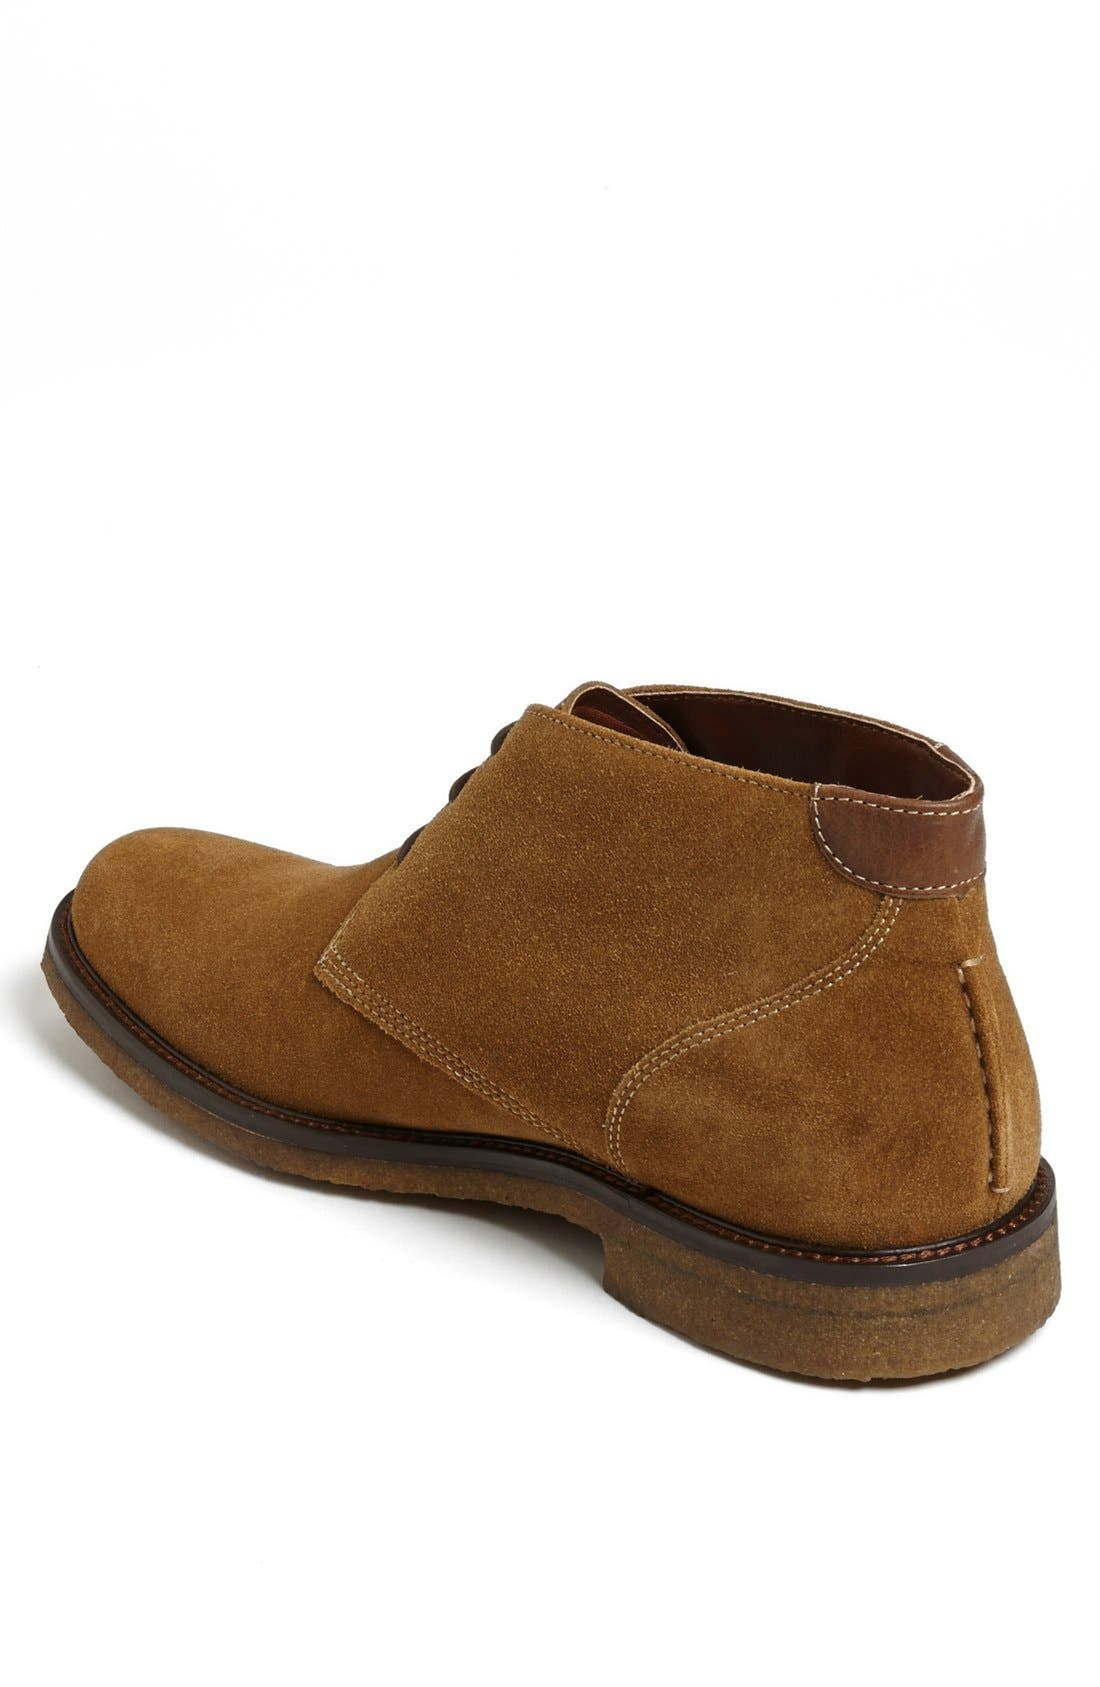 'Copeland' Suede Chukka Boot,                             Alternate thumbnail 25, color,